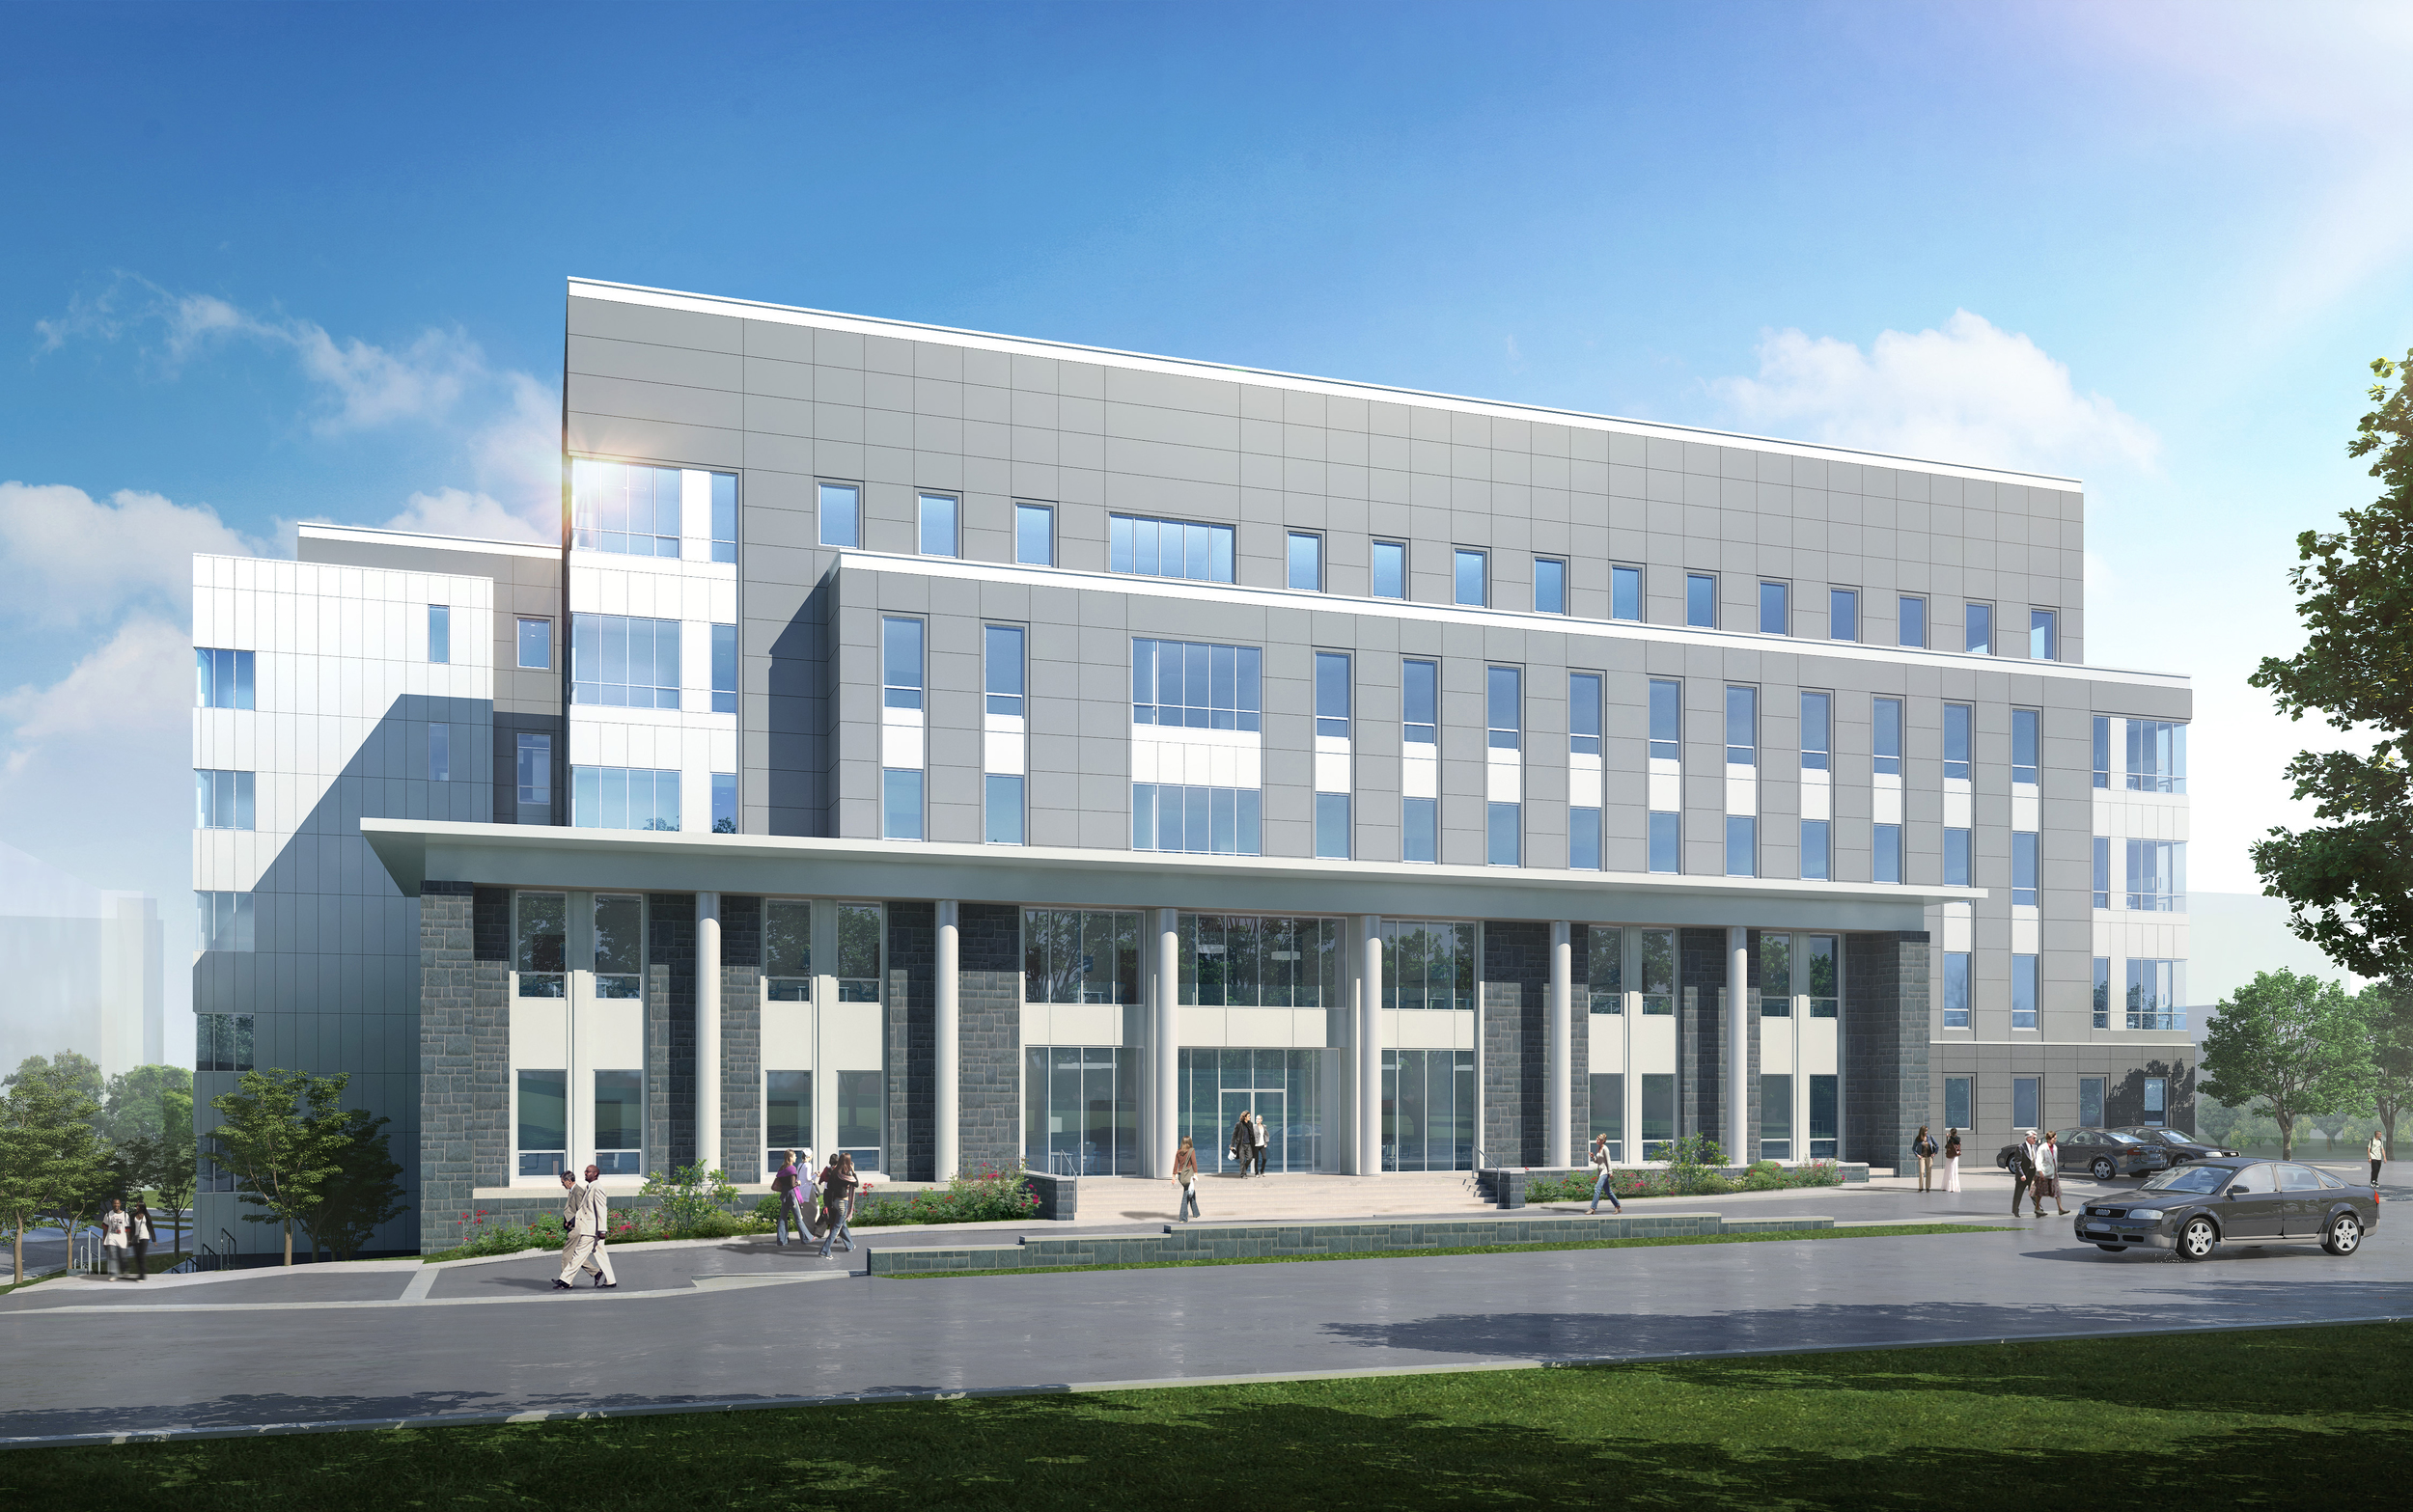 The new construction includes 17 classrooms, a variety of open and closed informal, collaborative learning spaces for both student and faculty in addition to technical, maintenance and other related support services. The project is scheduled to achieve LEED silver rating.